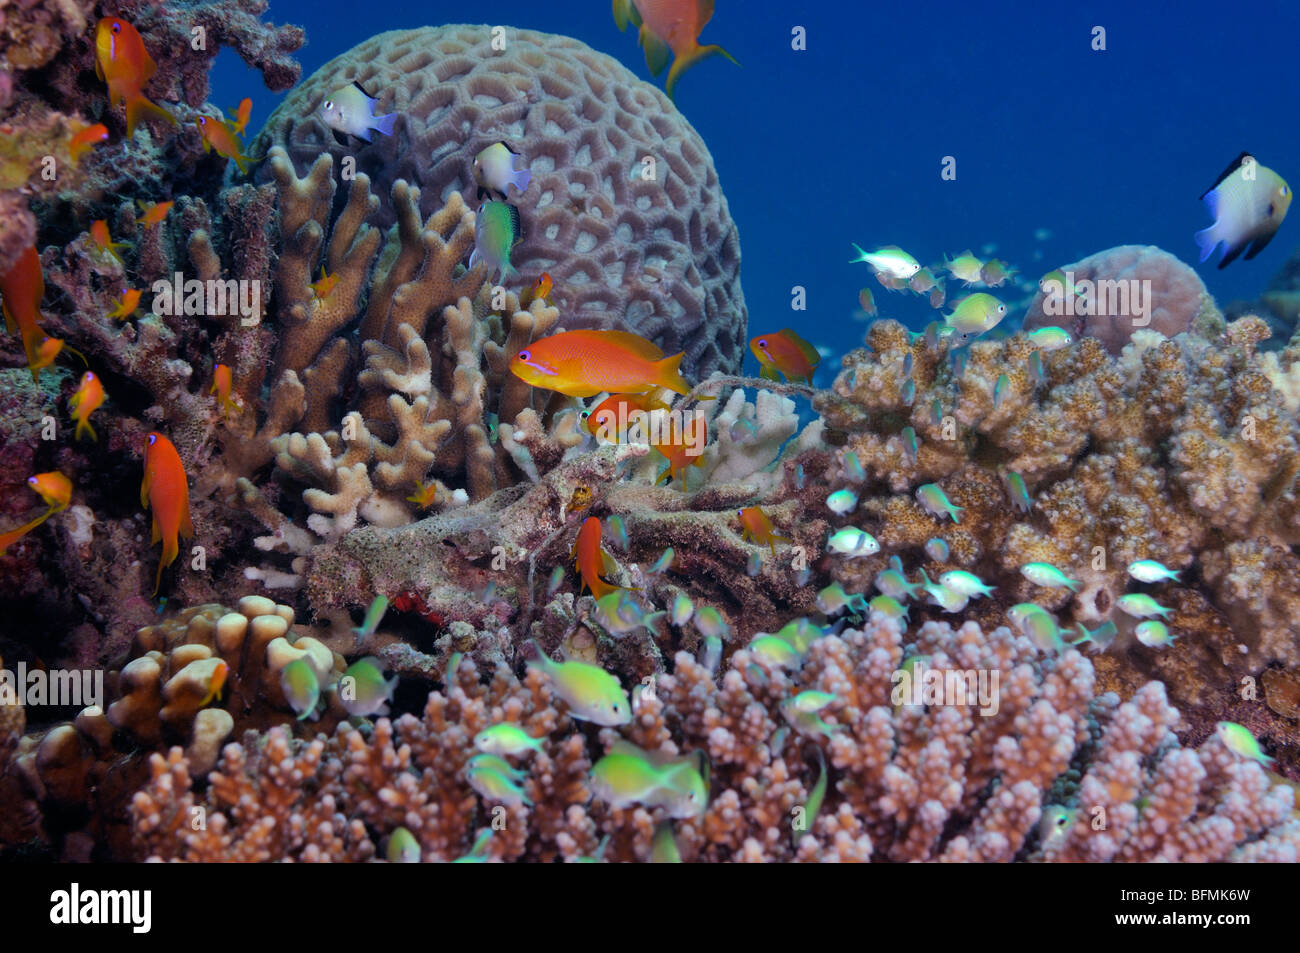 Coral reef with variety of hard corals and anthias fish, Red Sea - Stock Image